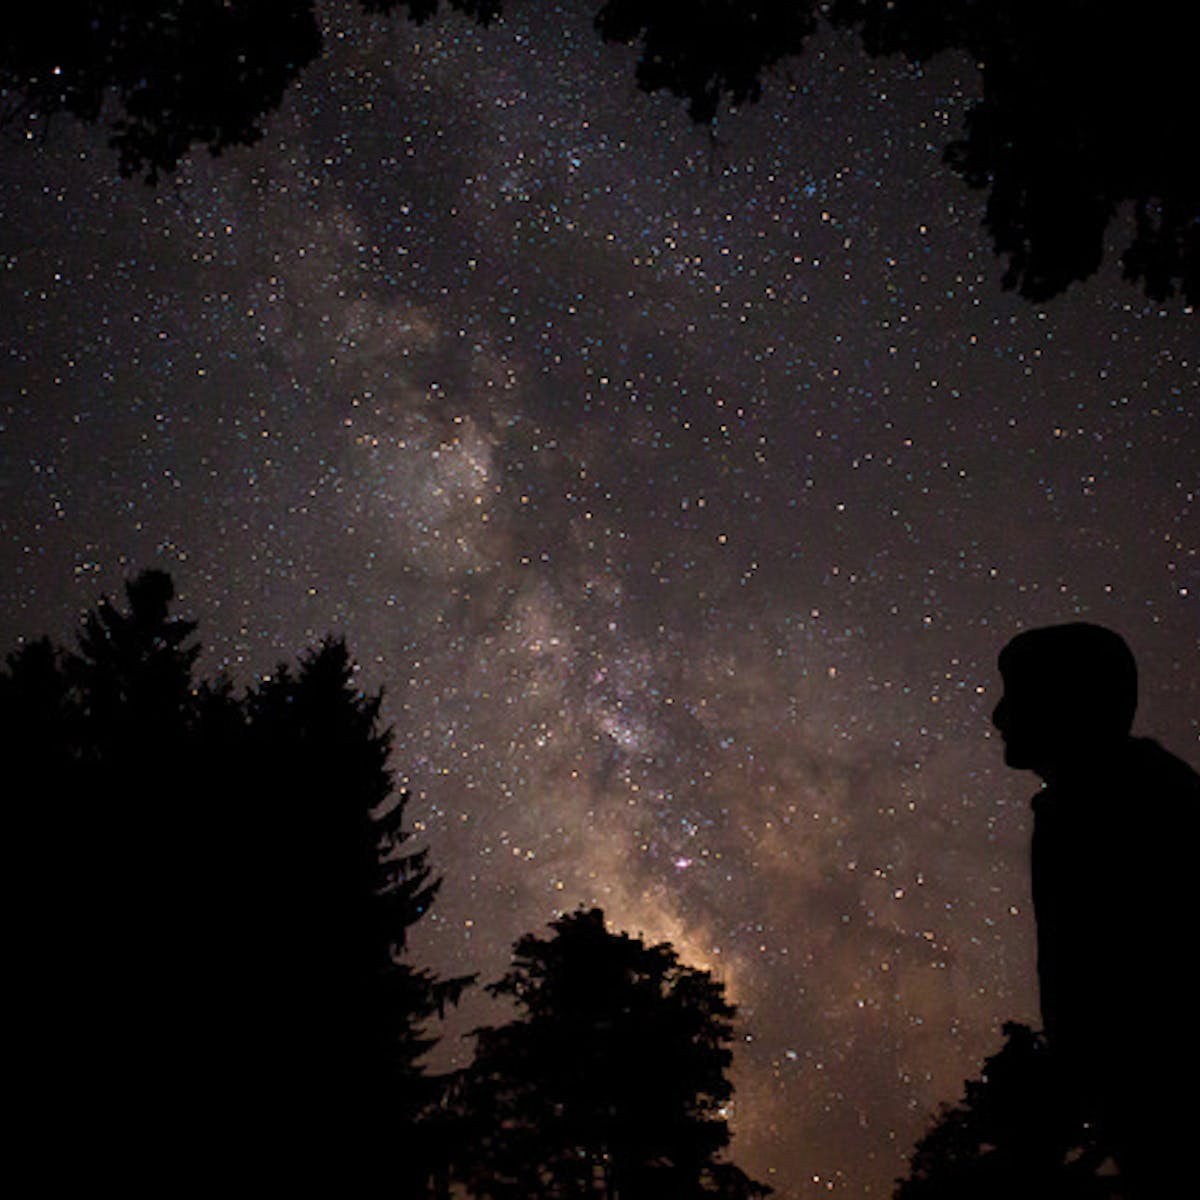 Perseids Meteor Shower: How to Watch the Breathtaking Event on August 11